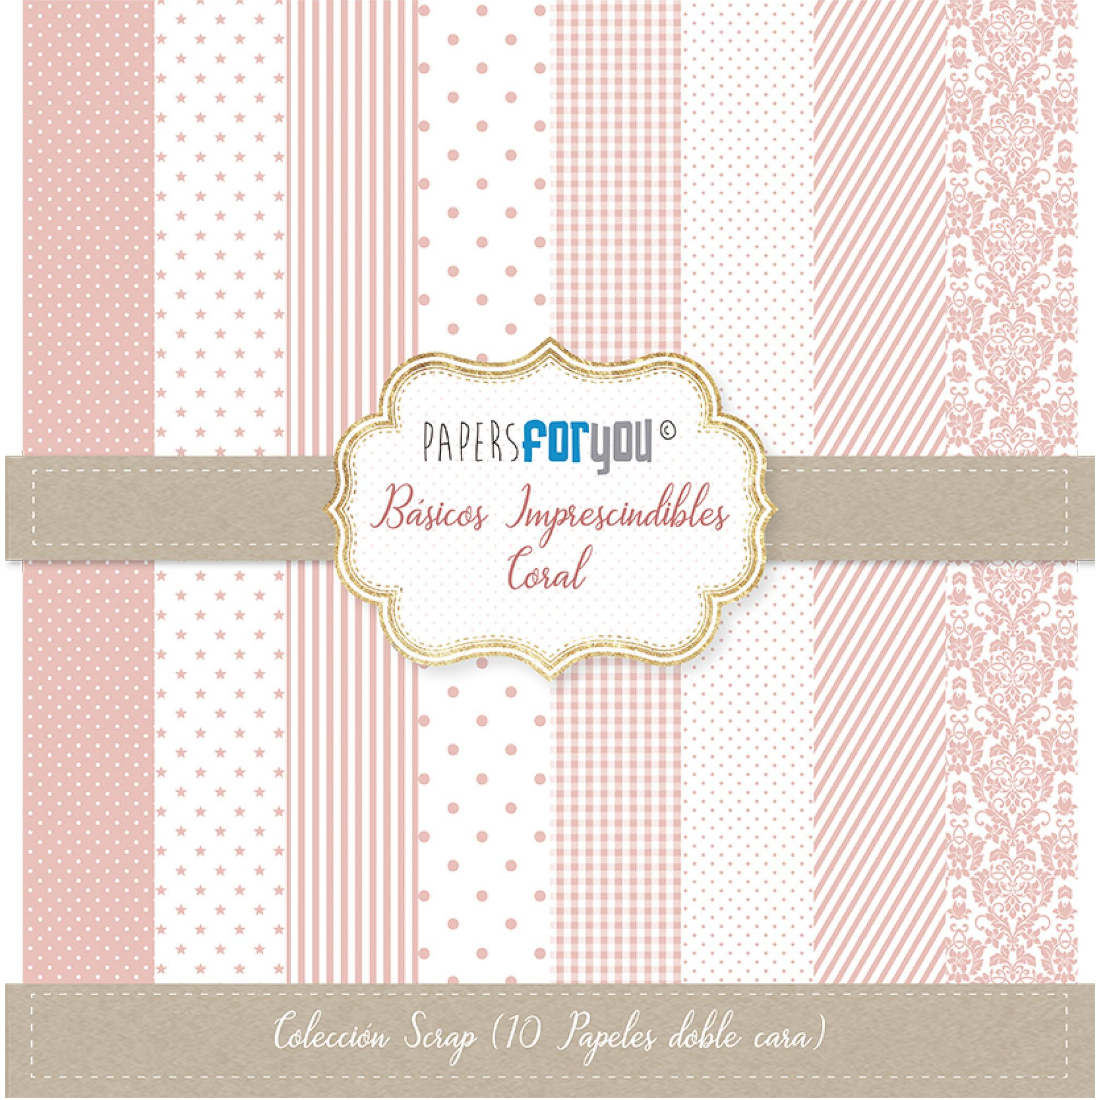 Bloco Papel Scrapbooking Basics Coral PFY-2214 papersforyou